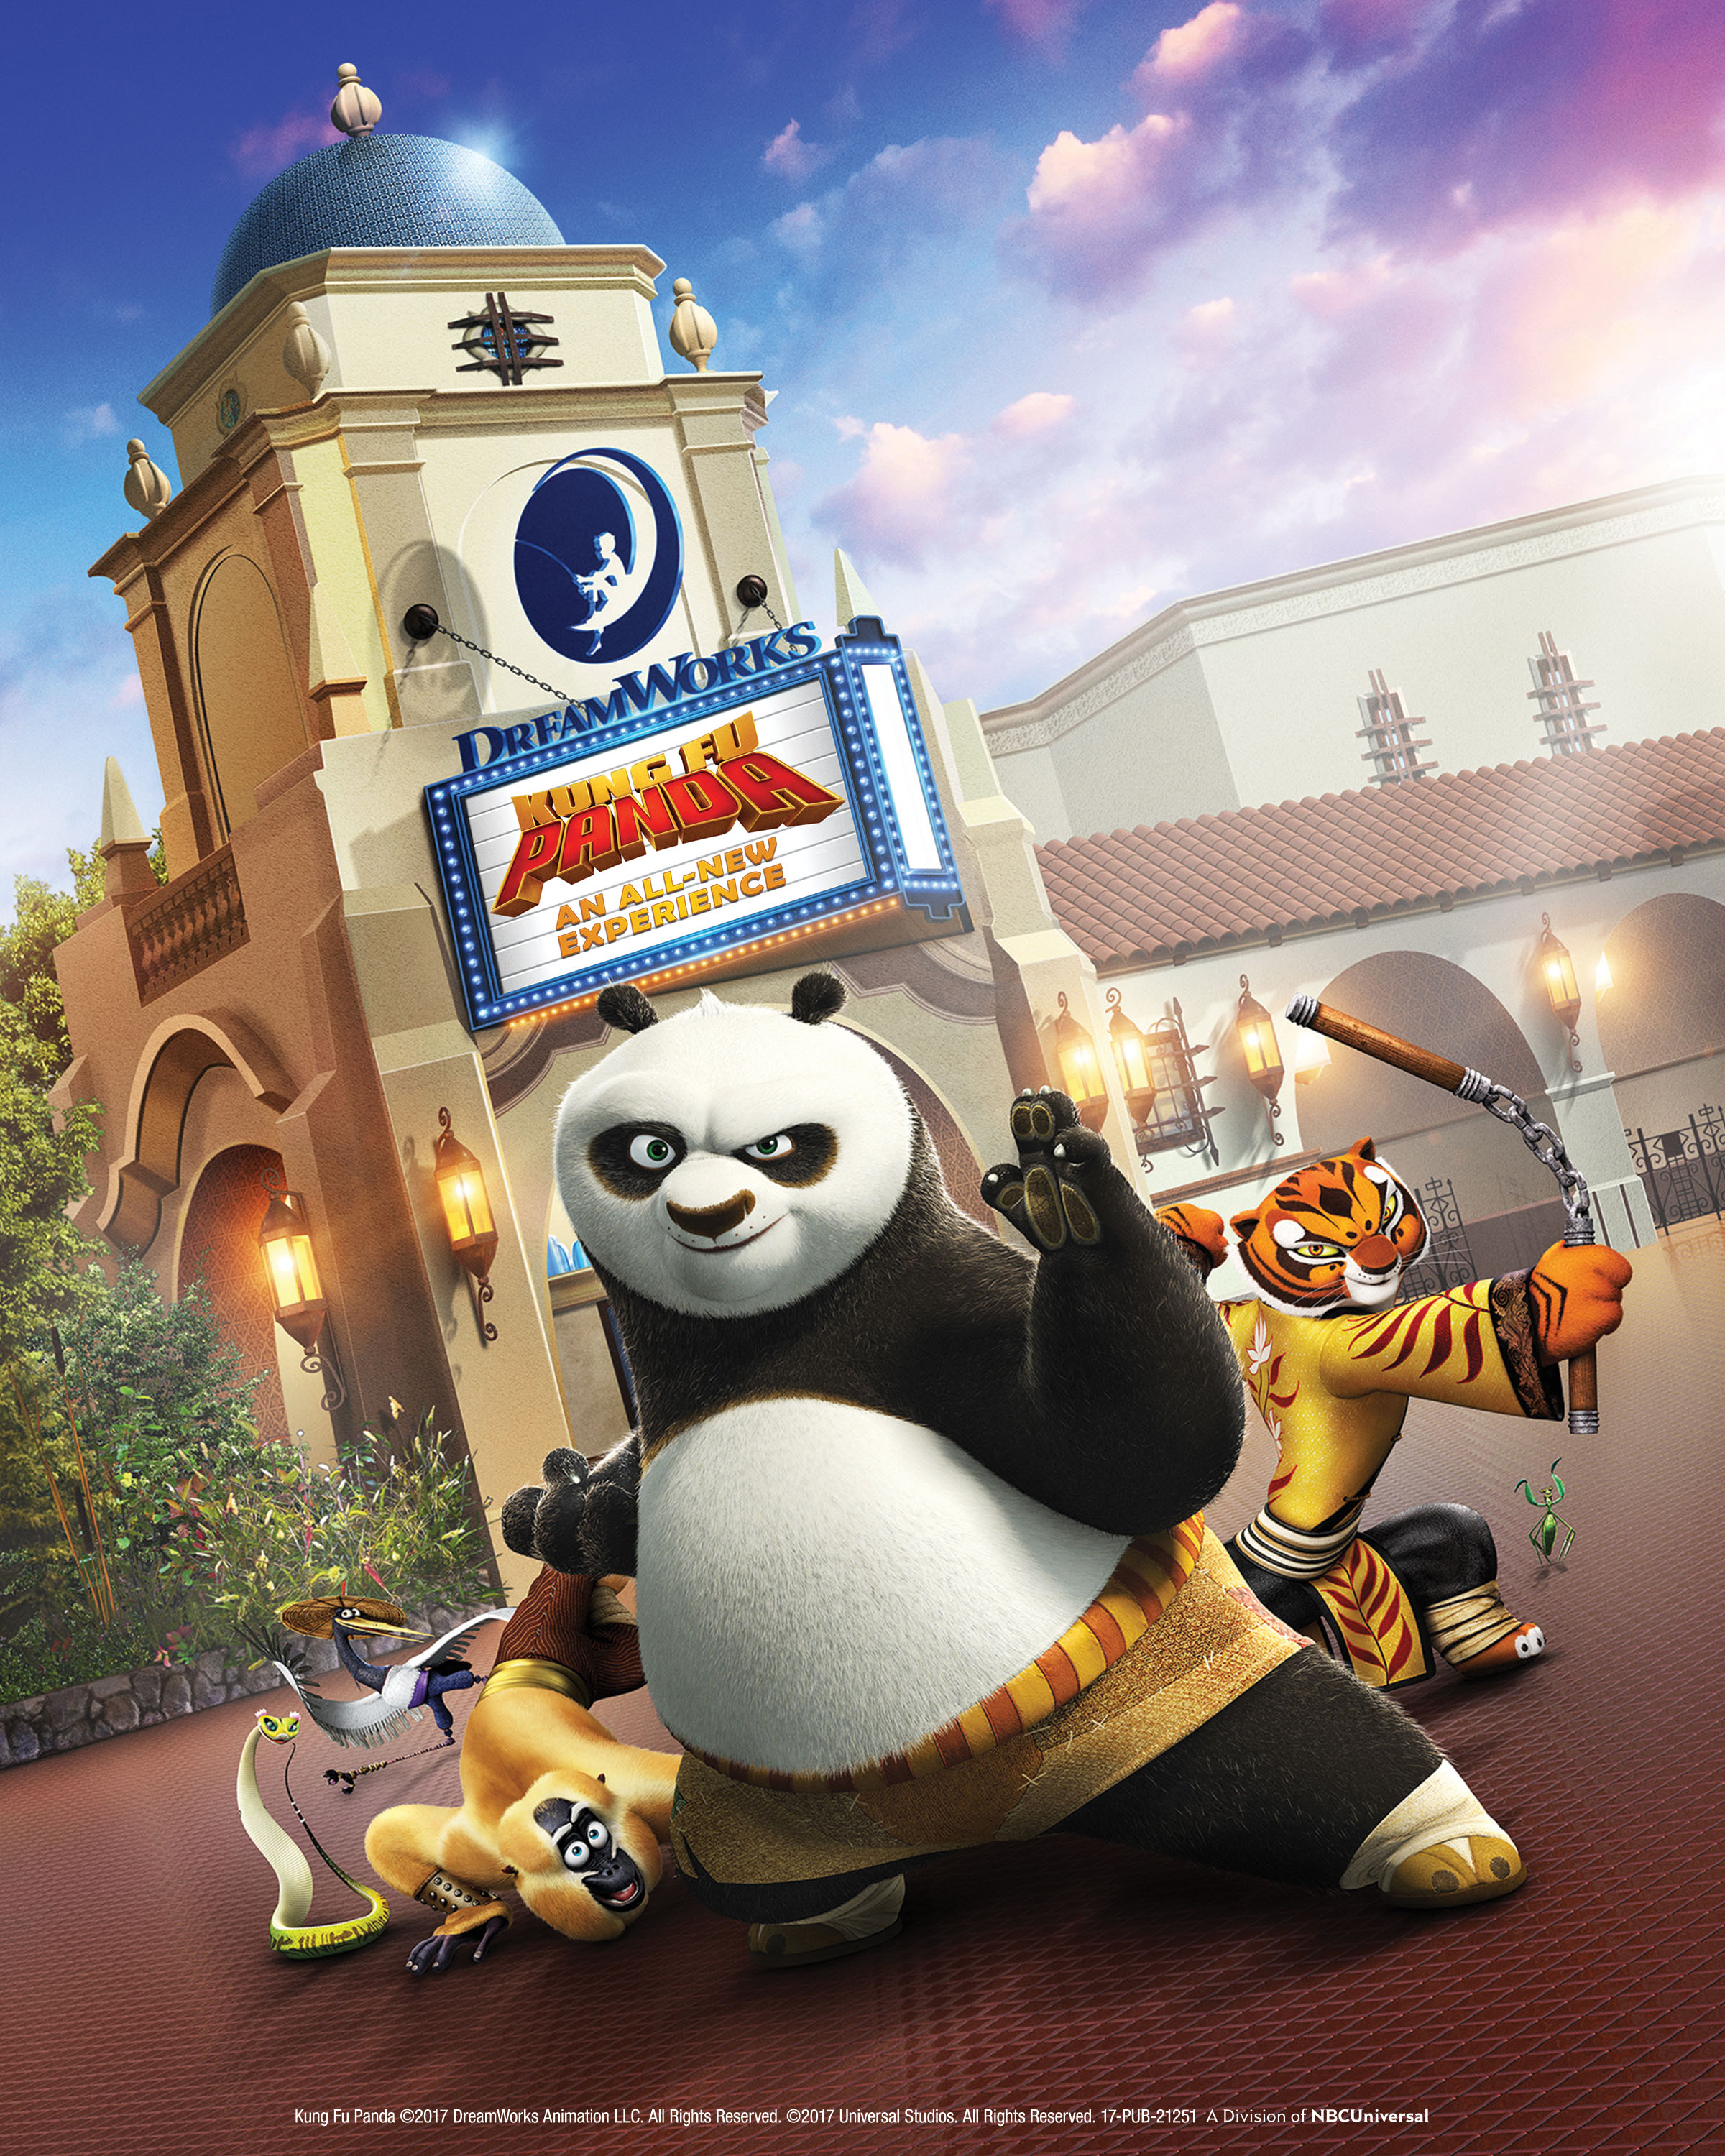 May The 4th Be With You Disneyland 2019: DreamWorks Theatre At Universal Studios Hollywood